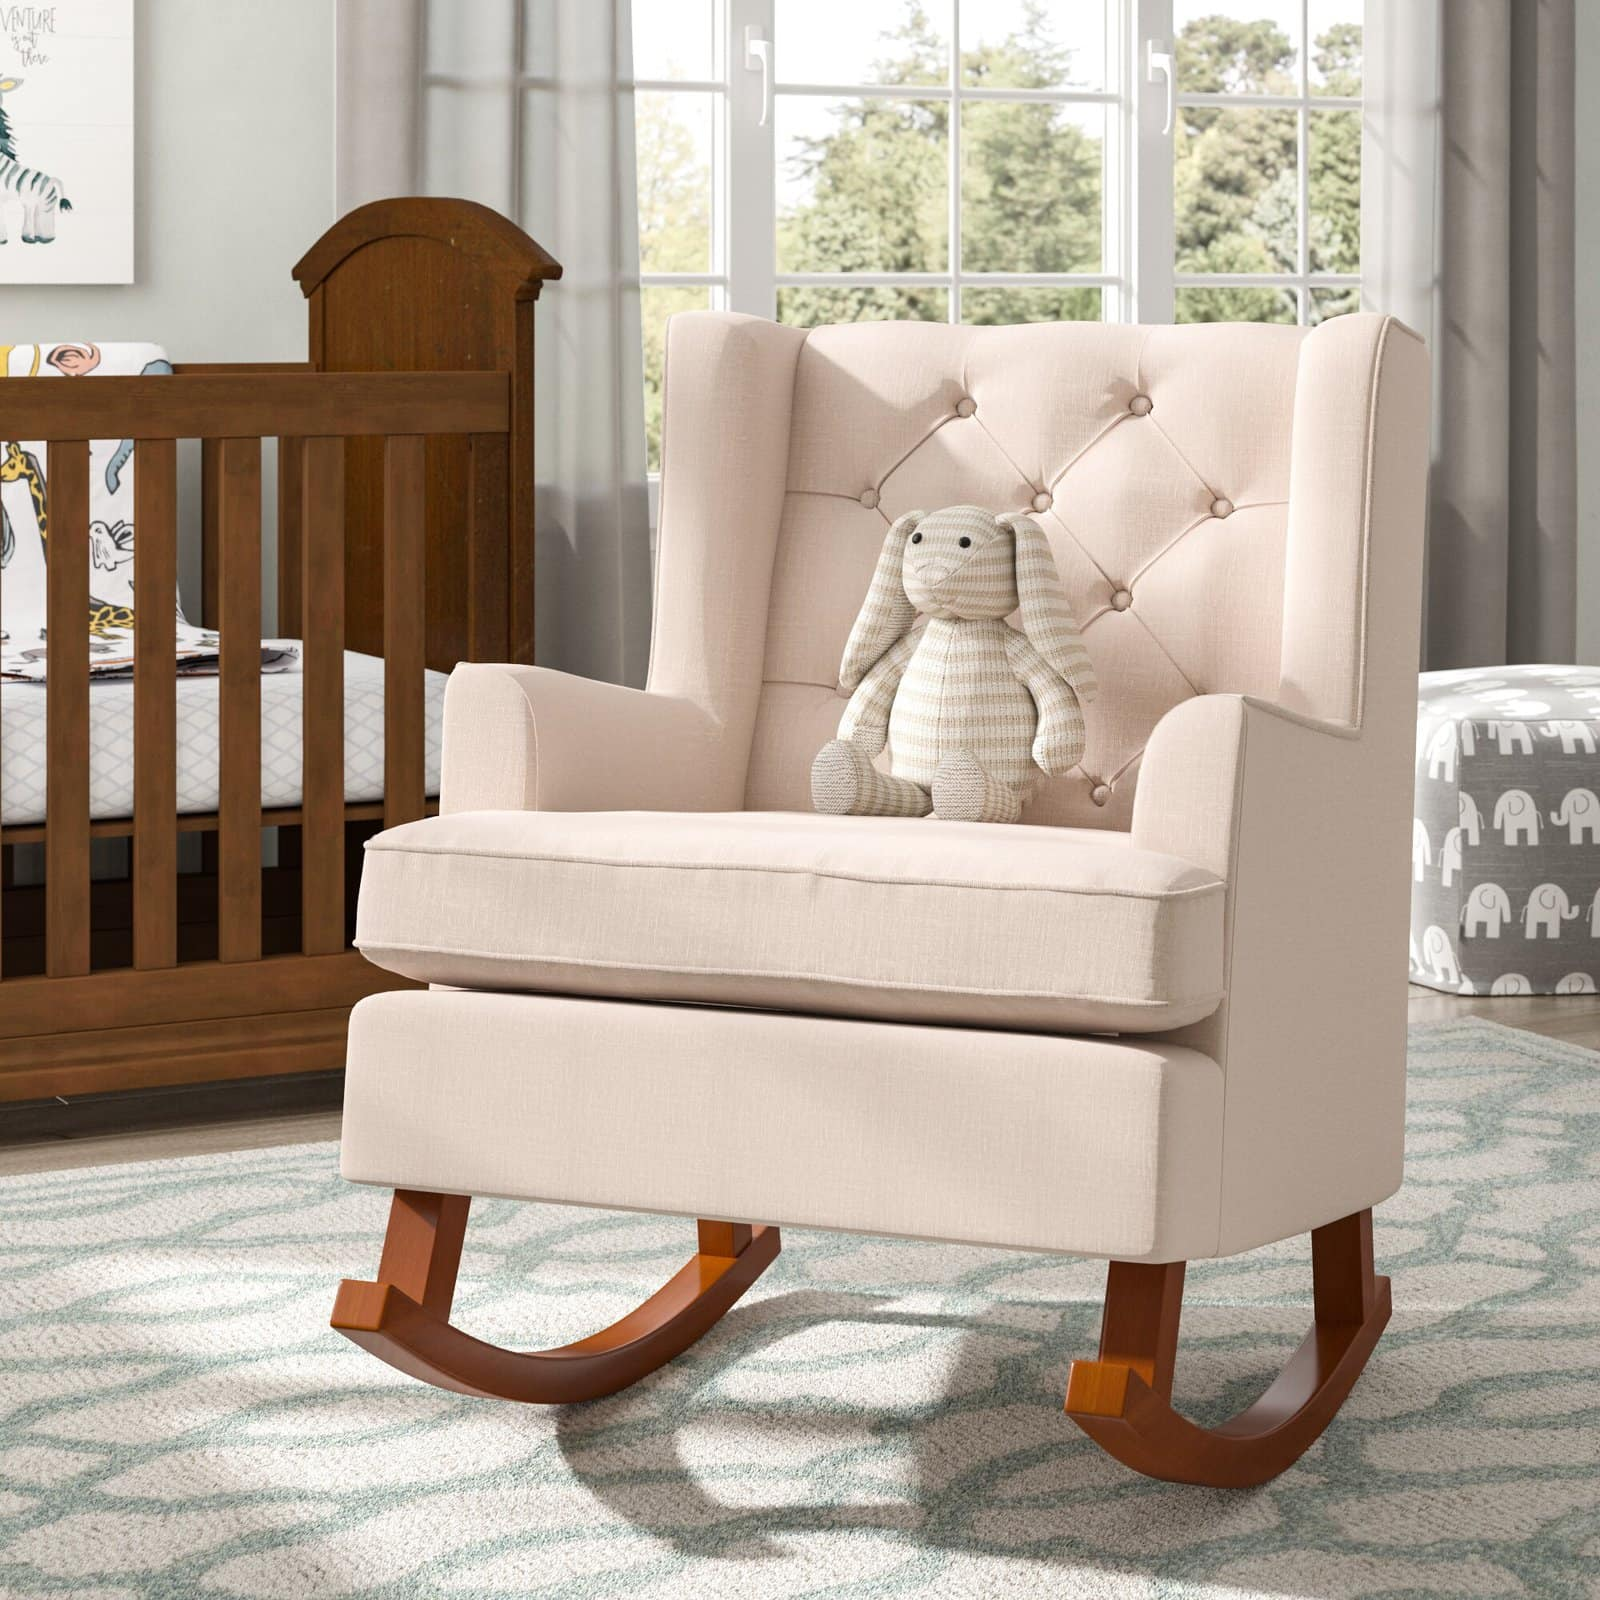 Create somewhere Cosy for You and your Baby Girl